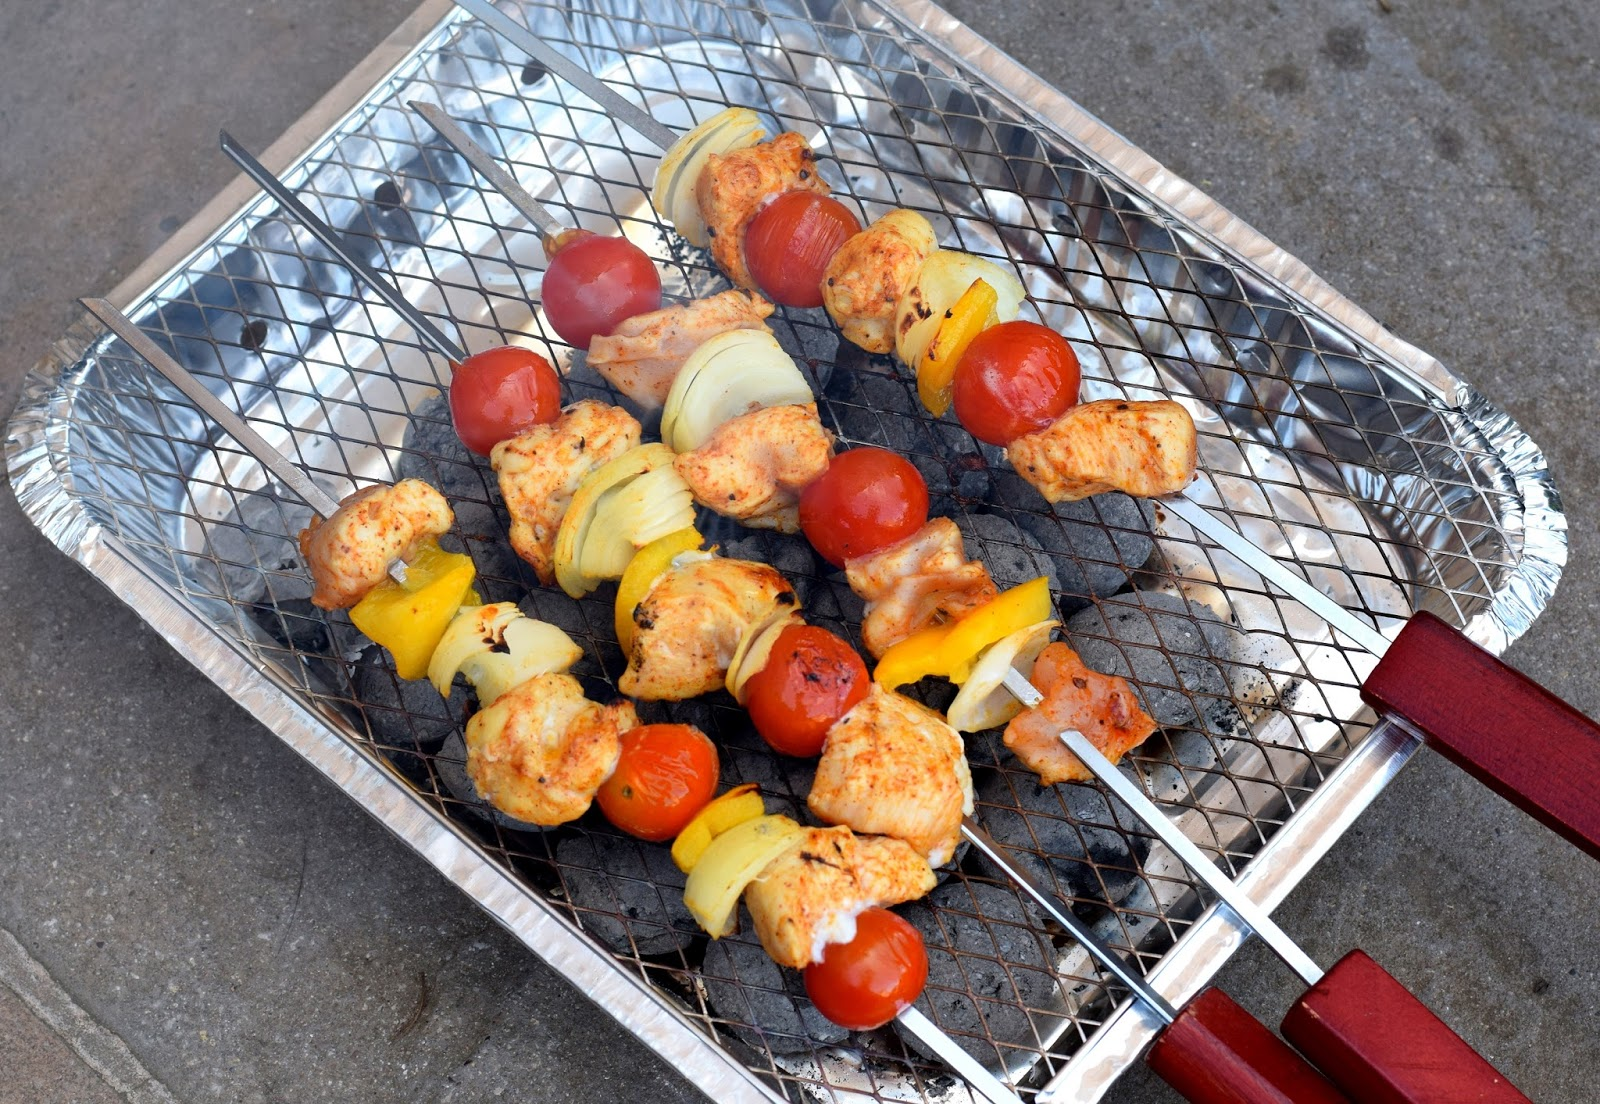 Summer Holidays And Campfire Cooking